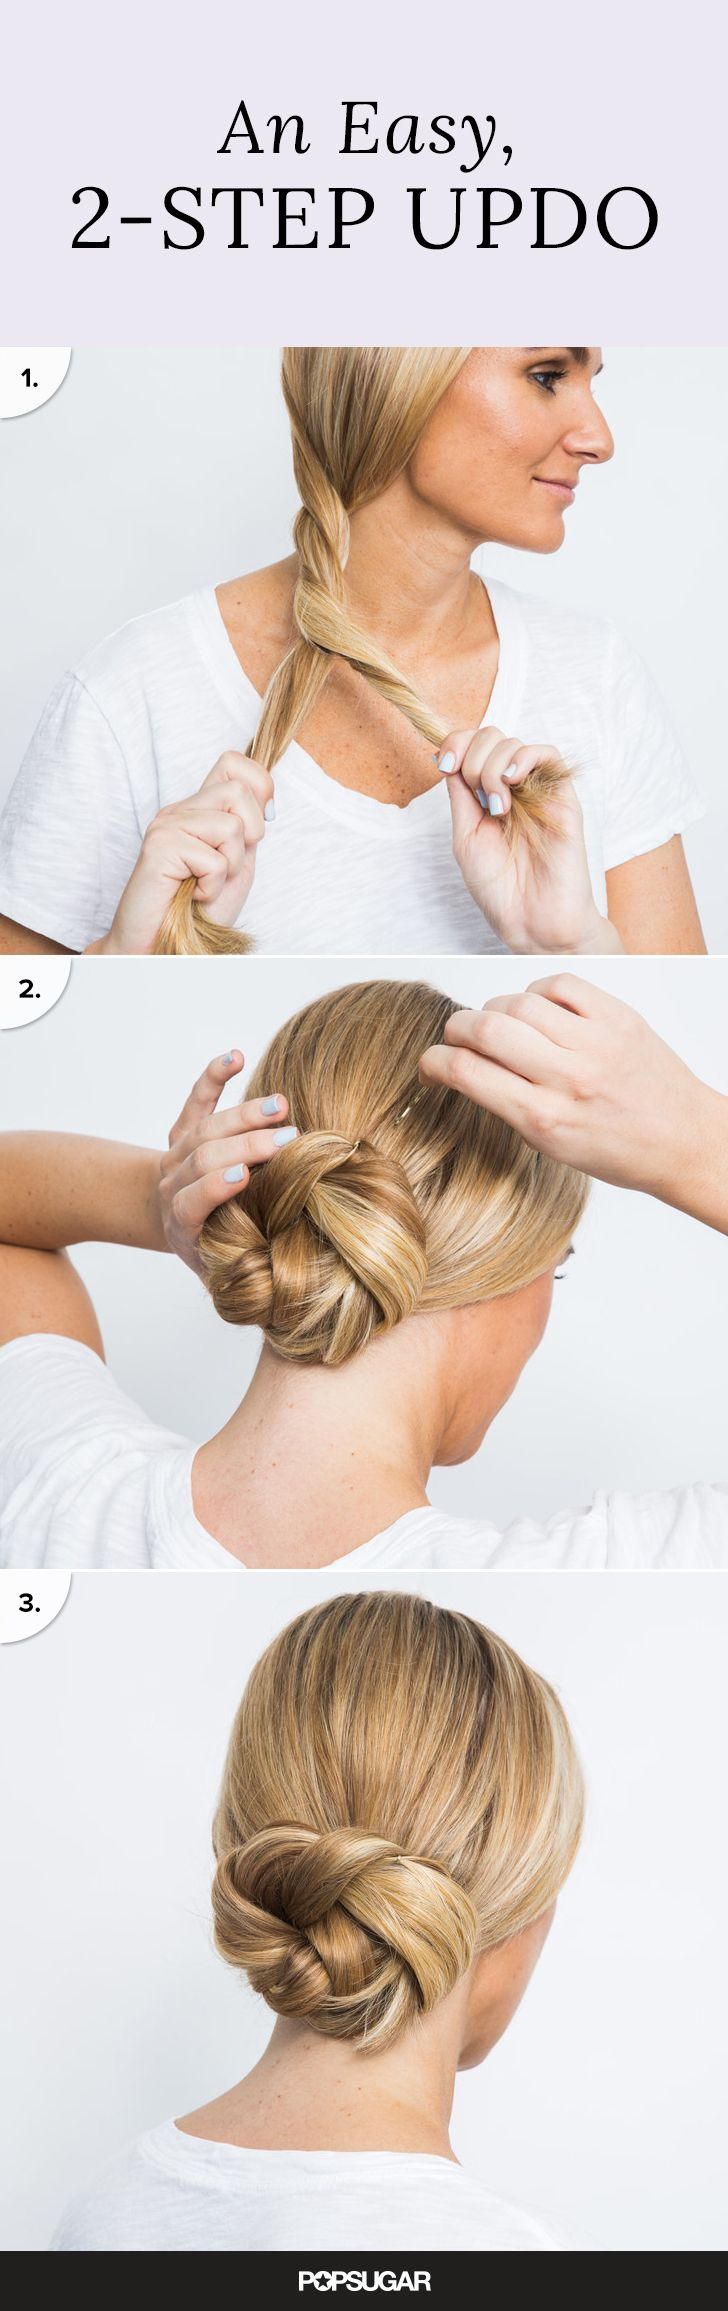 Summer brings out the worst in everyones hair! But if these hair tricks can hold up at swimsuit shoots on the beach, then theyll do the job for you, too. Youll be amazed at the time youll save on styling with the two-minute updo and five-minute blowout secrets. #promdress #coniefoxdress